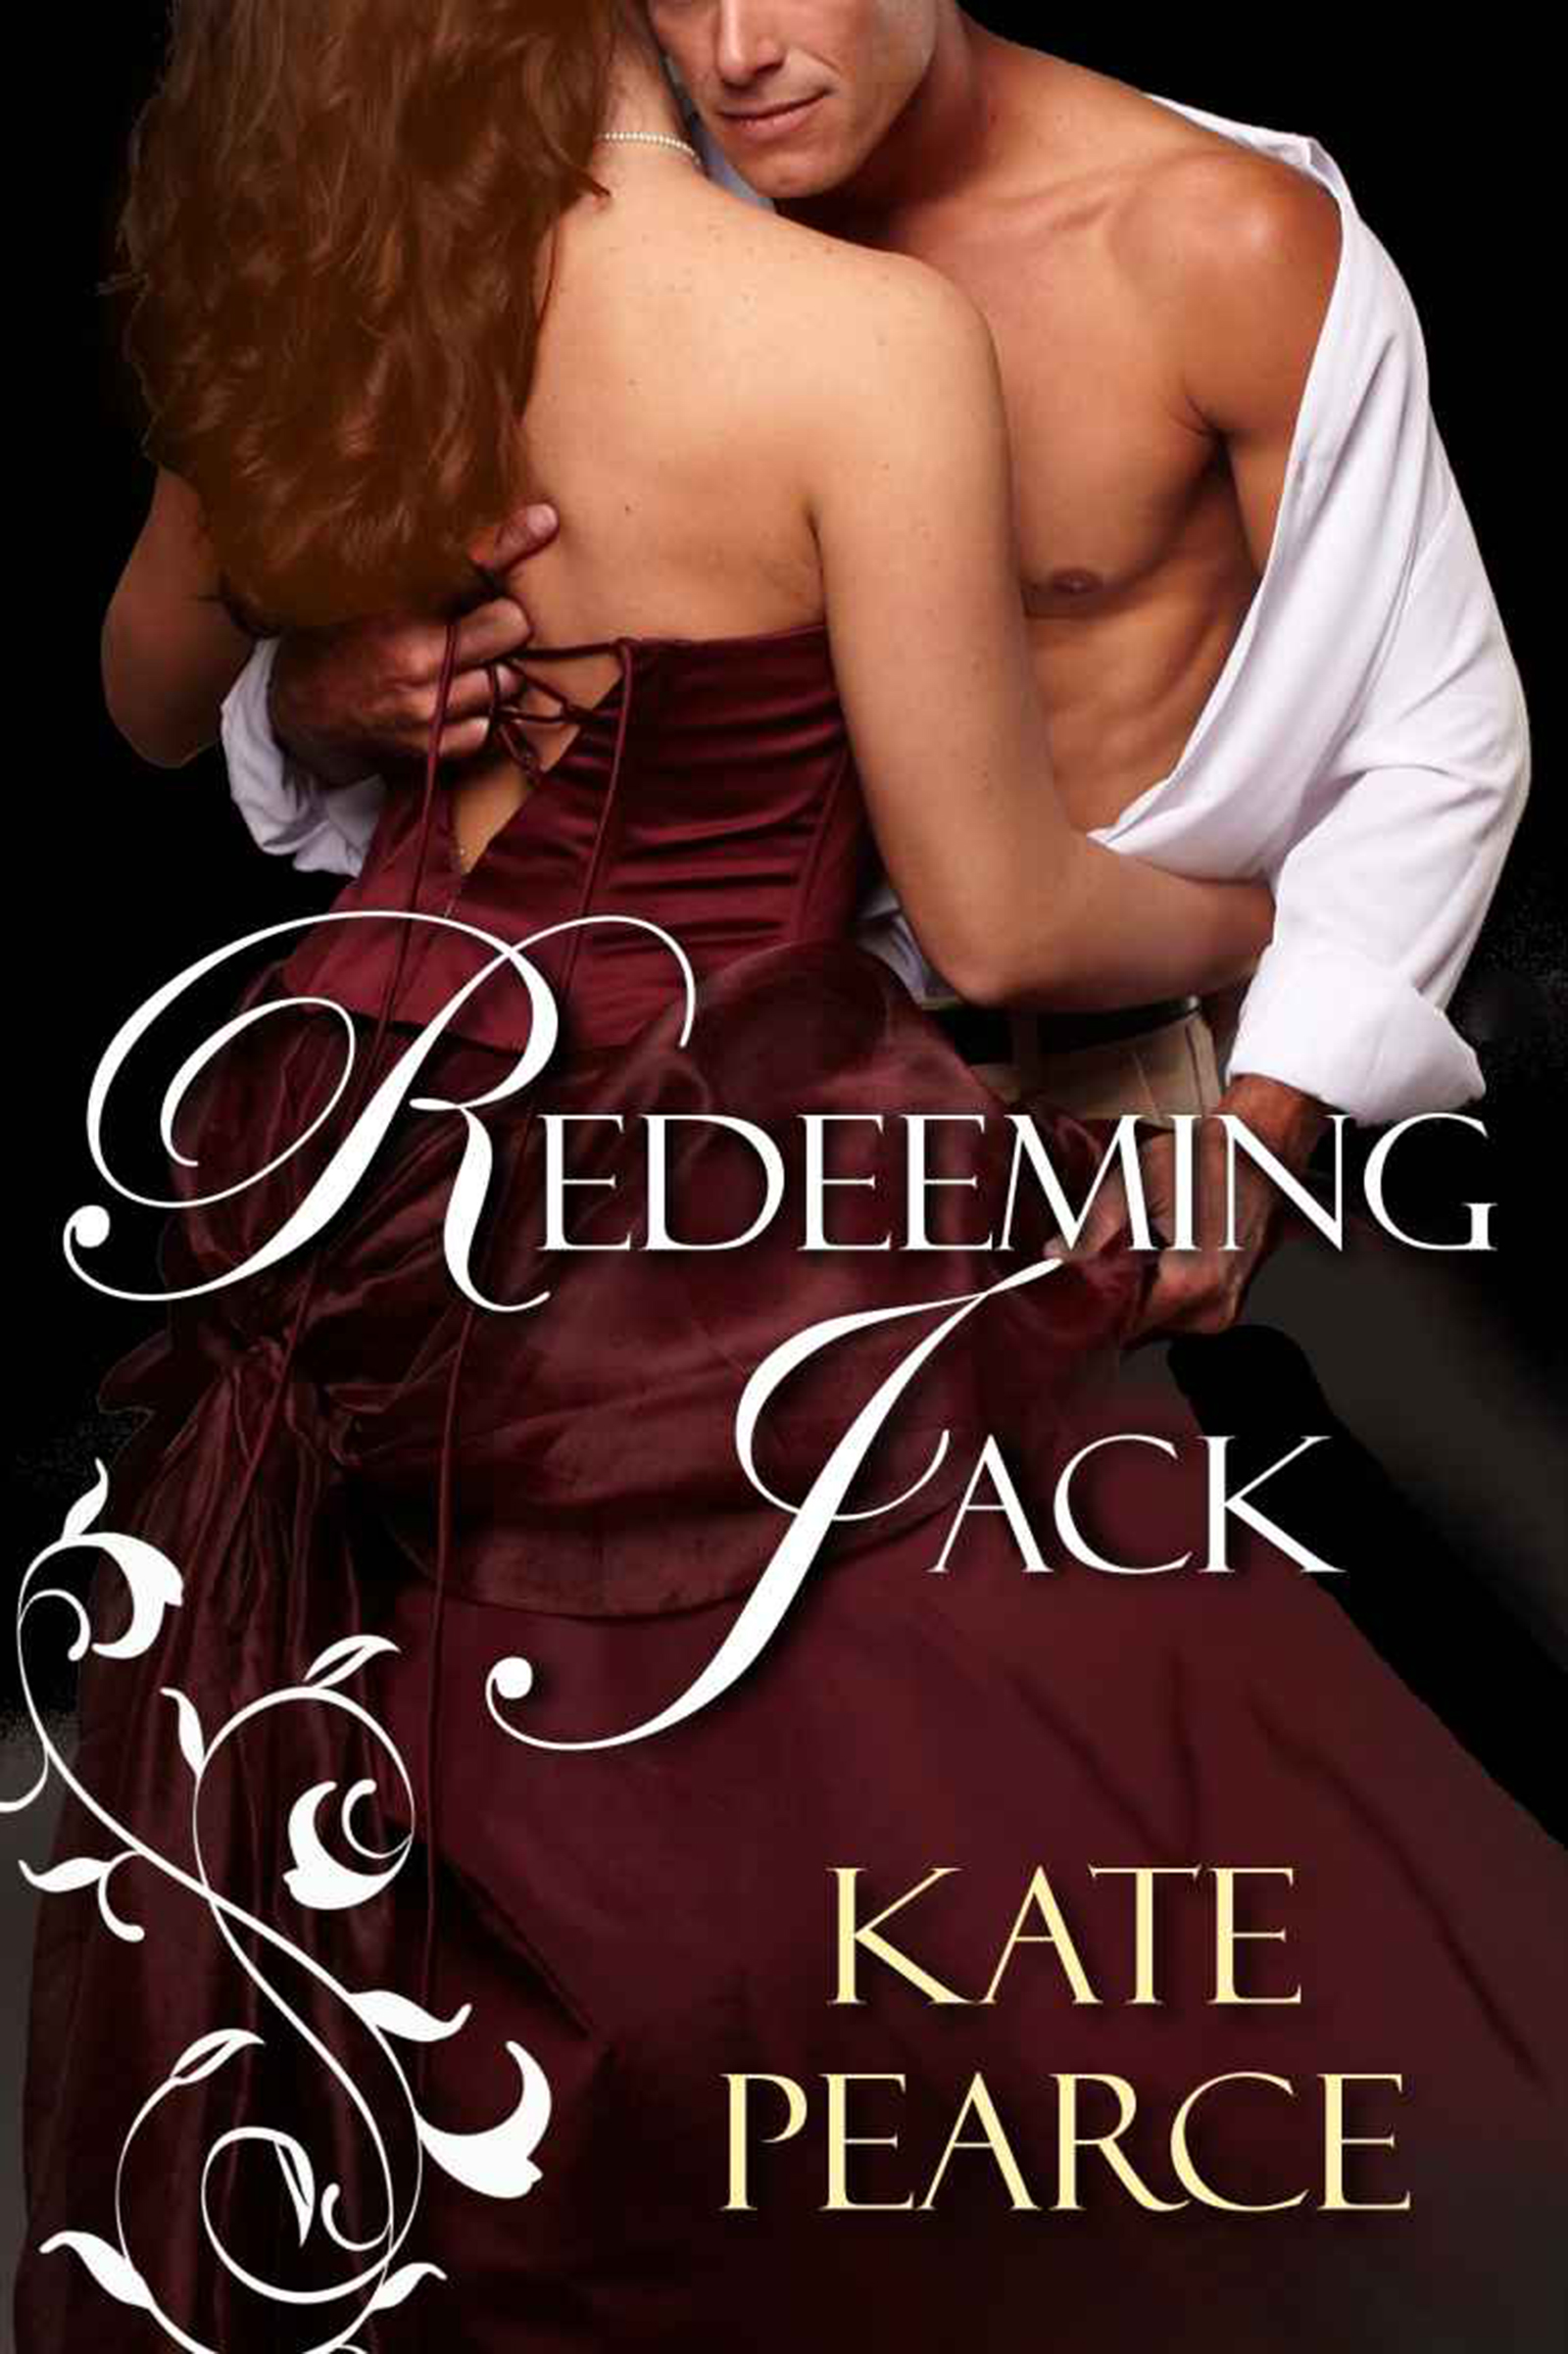 Kate Pearce - Redeeming Jack